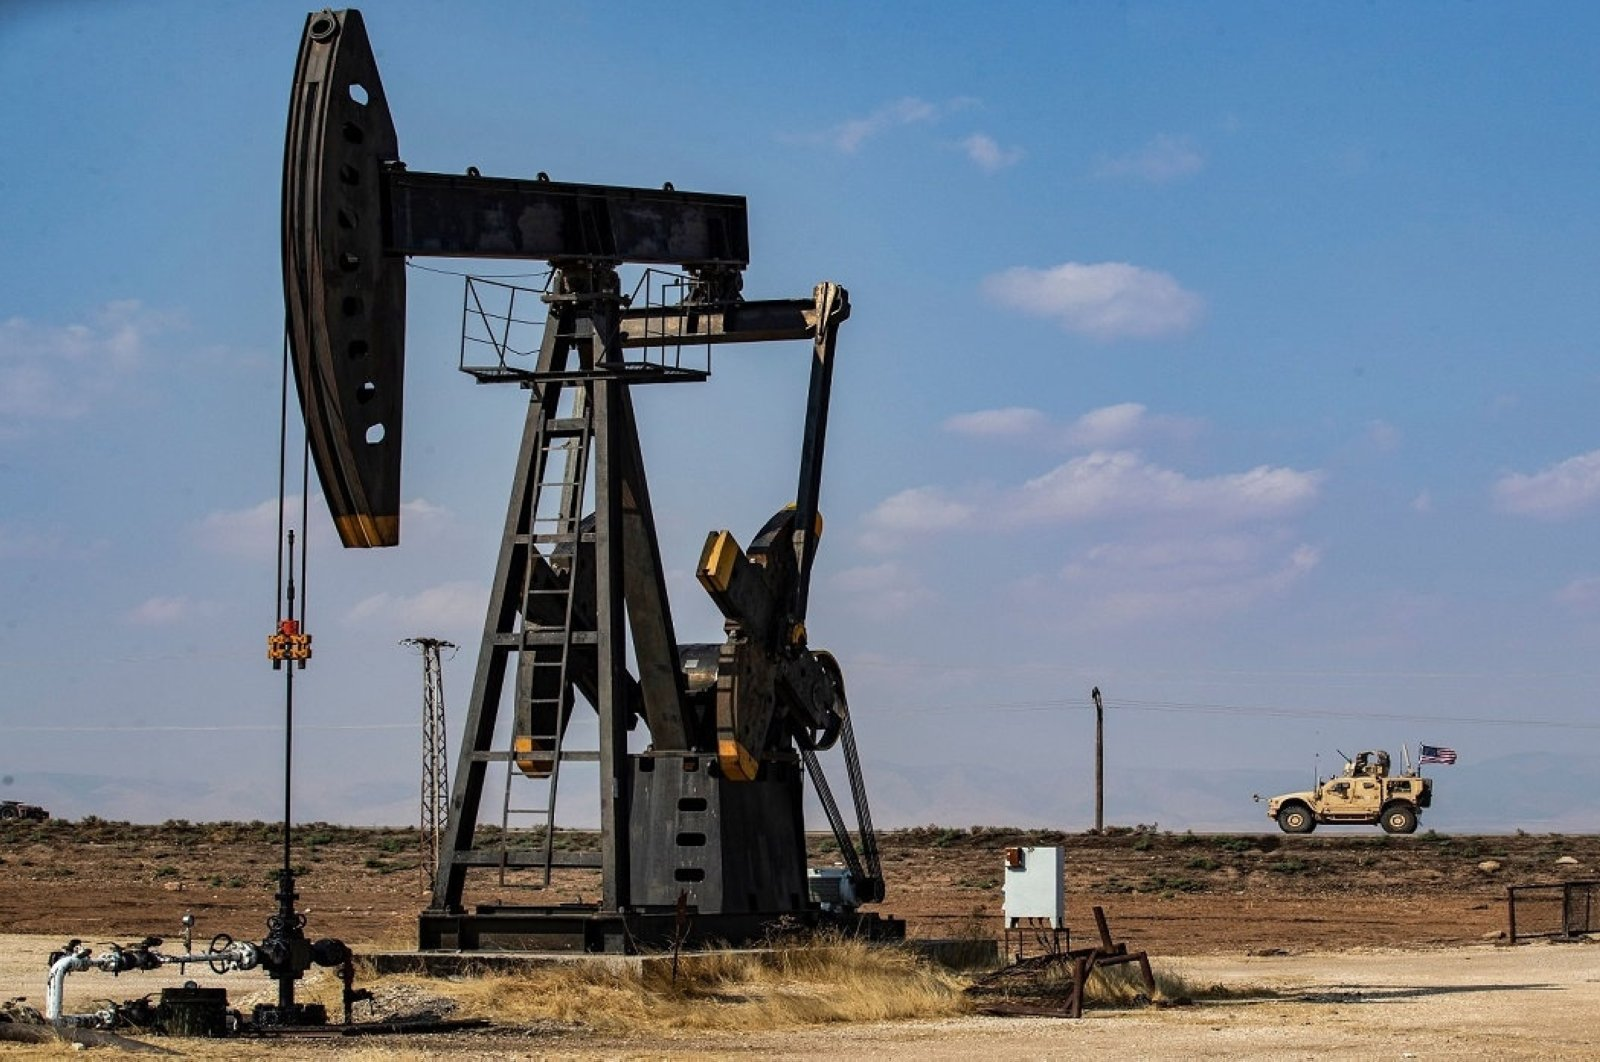 A U.S. military vehicle, part of a convoy arriving from northern Iraq, drives past an oil pump jack in the countryside of Syria's northeastern city of Qamishli on Oct. 26, 2019. (AFP Photo)